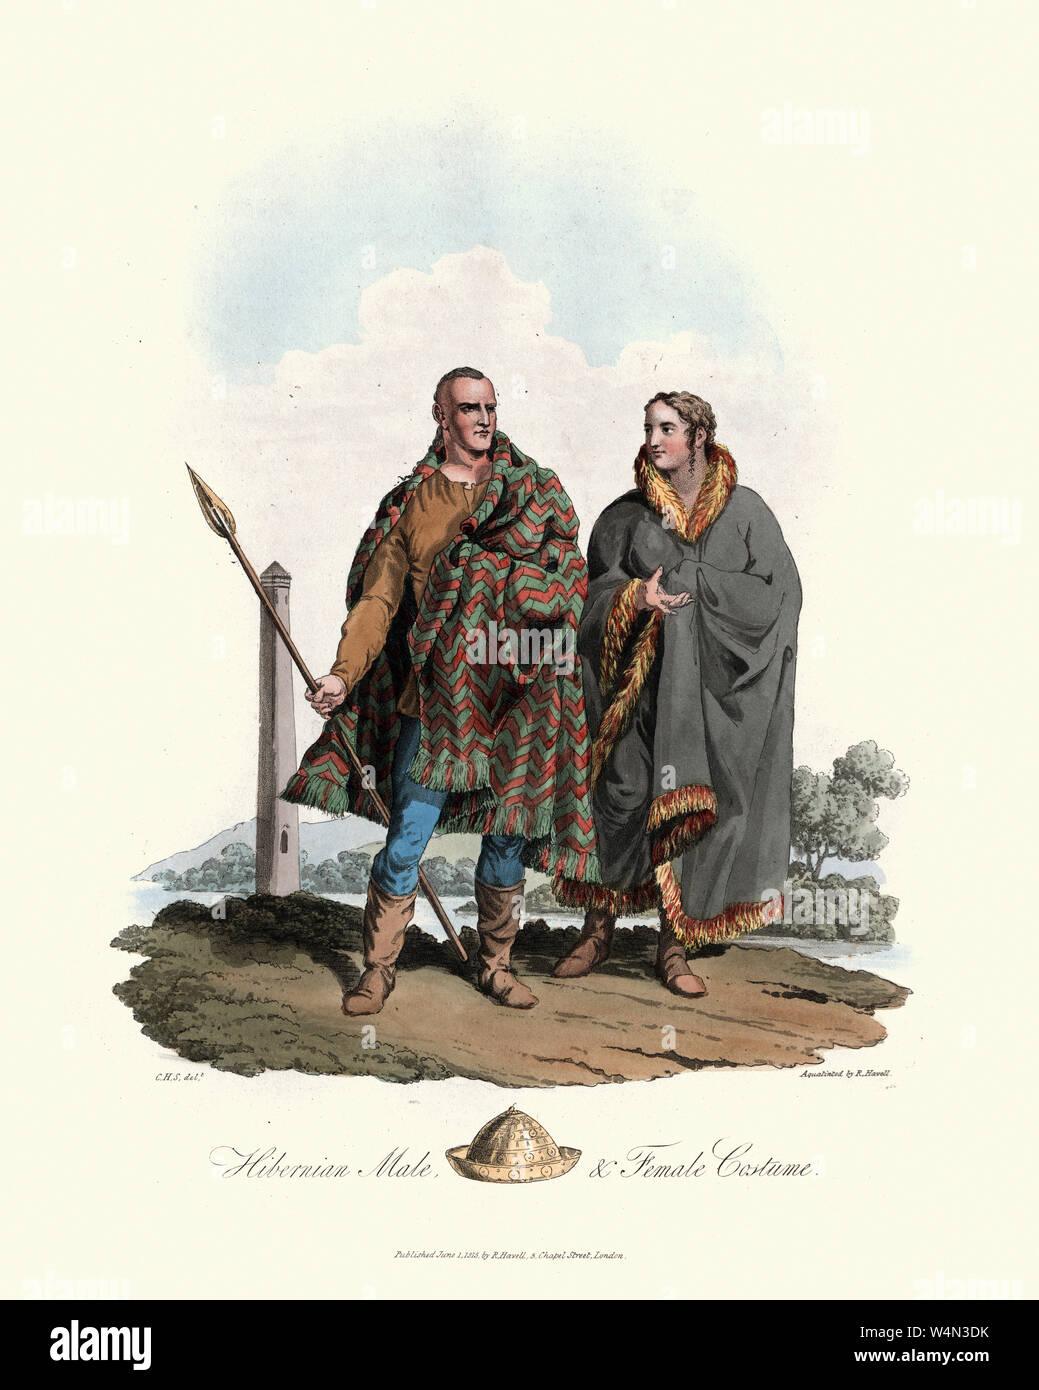 Vintage engraving of Costumes of Ancient British, Hibernian man and woman. 1815, The Costume of the Original Inhabitants of the British Islands, by ME Stock Photo